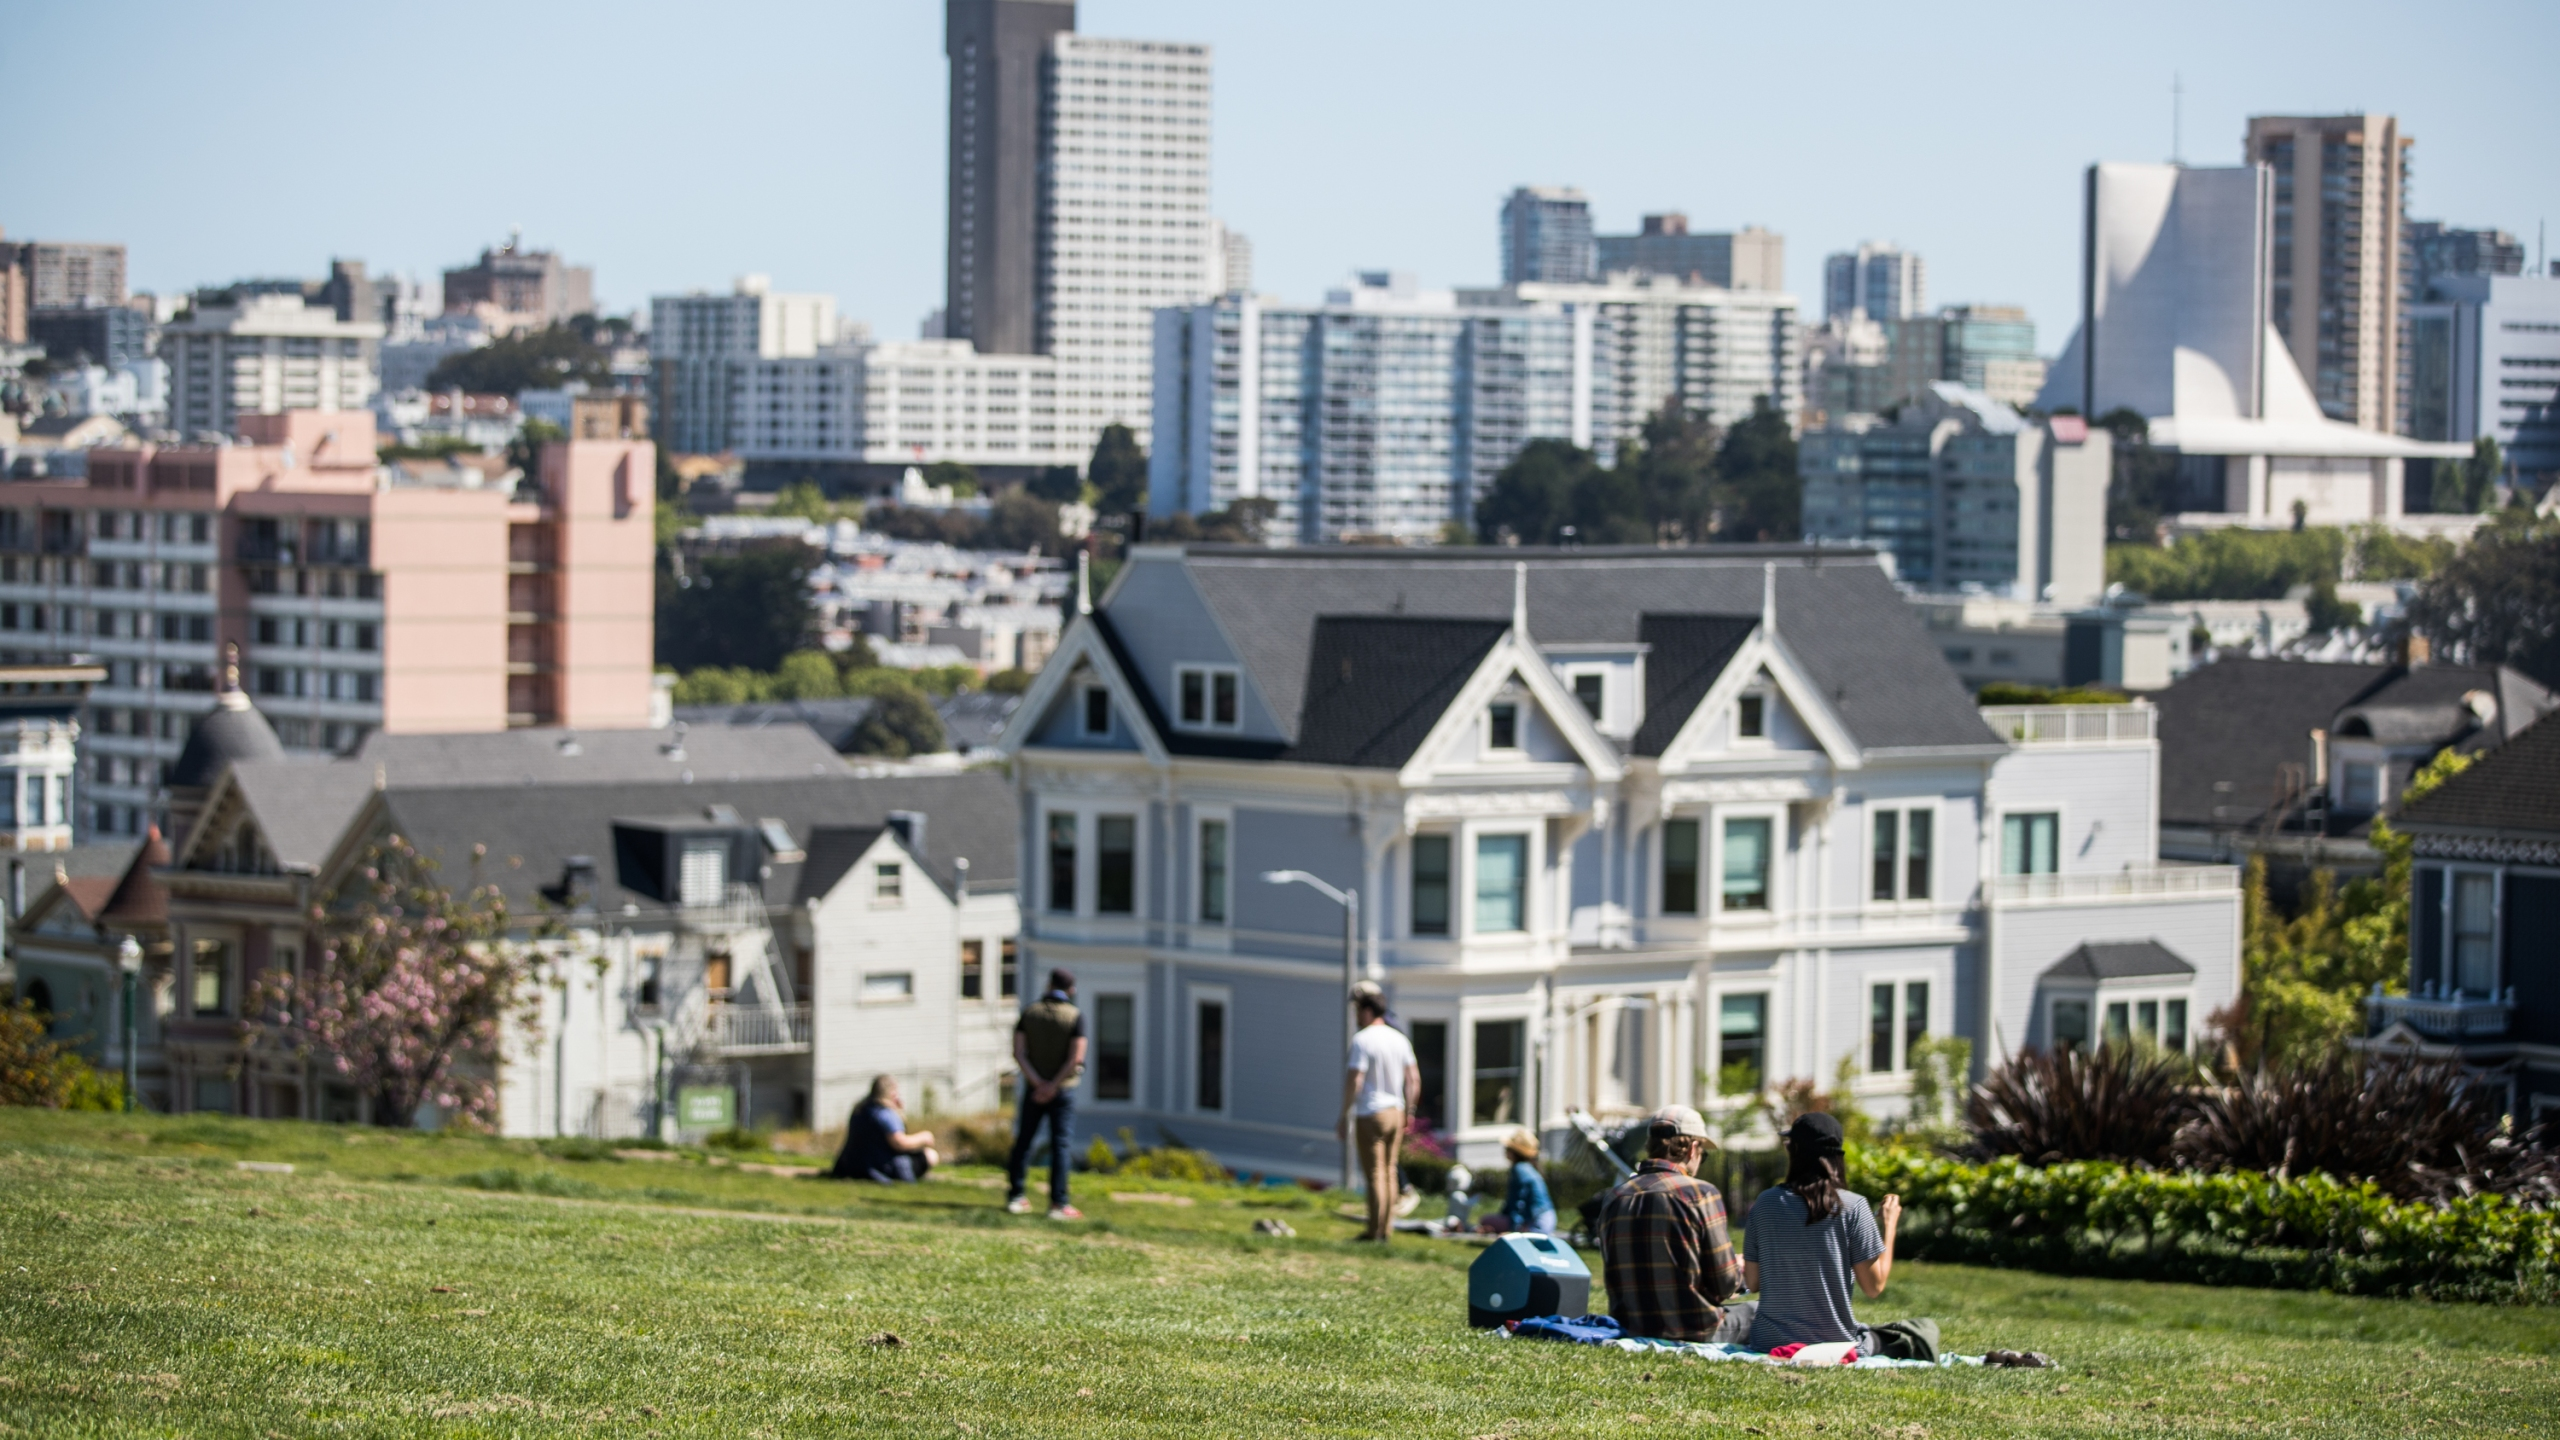 People sit on the grass at Alamo Square Park during the coronavirus pandemic on May 3, 2020 in San Francisco. (Rich Fury/Getty Images)